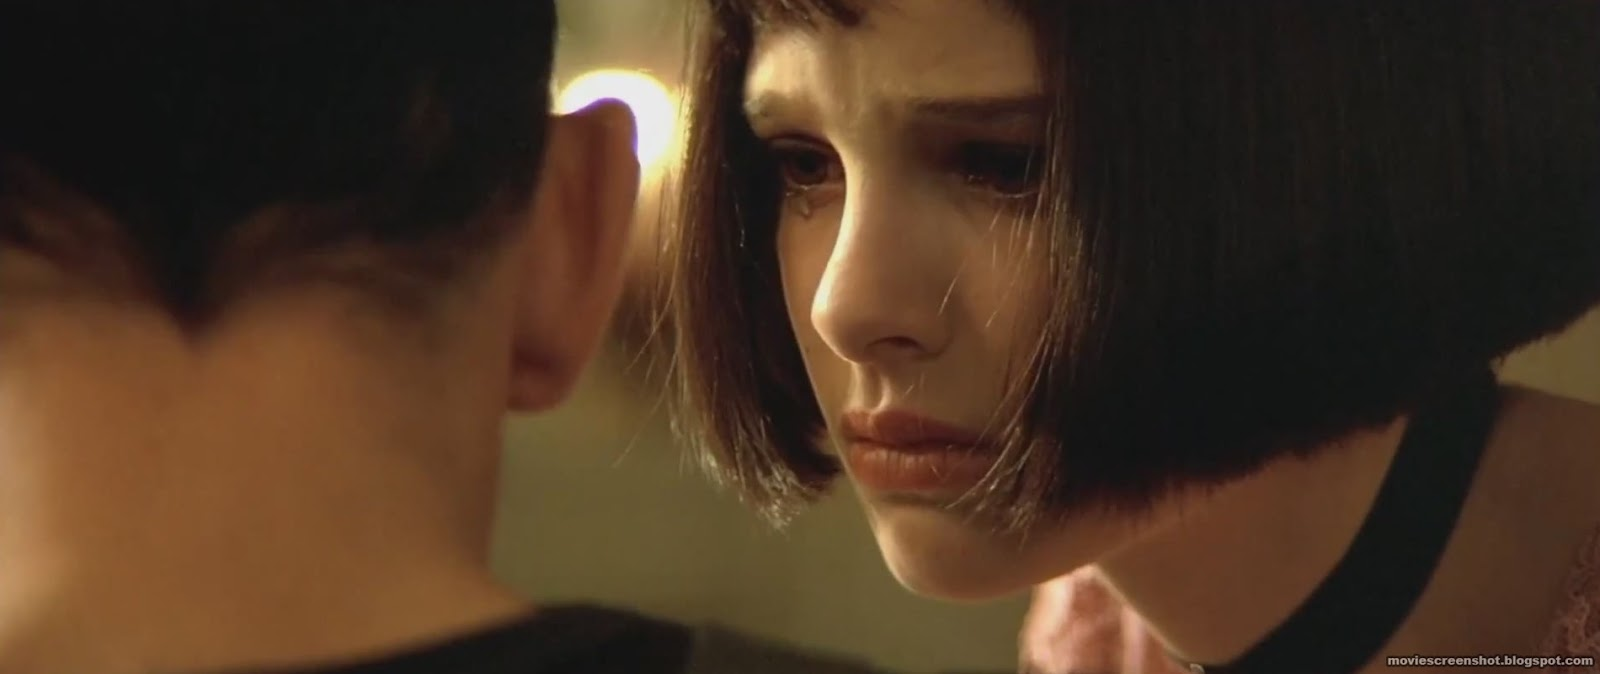 leon the professional hd movie screenshots